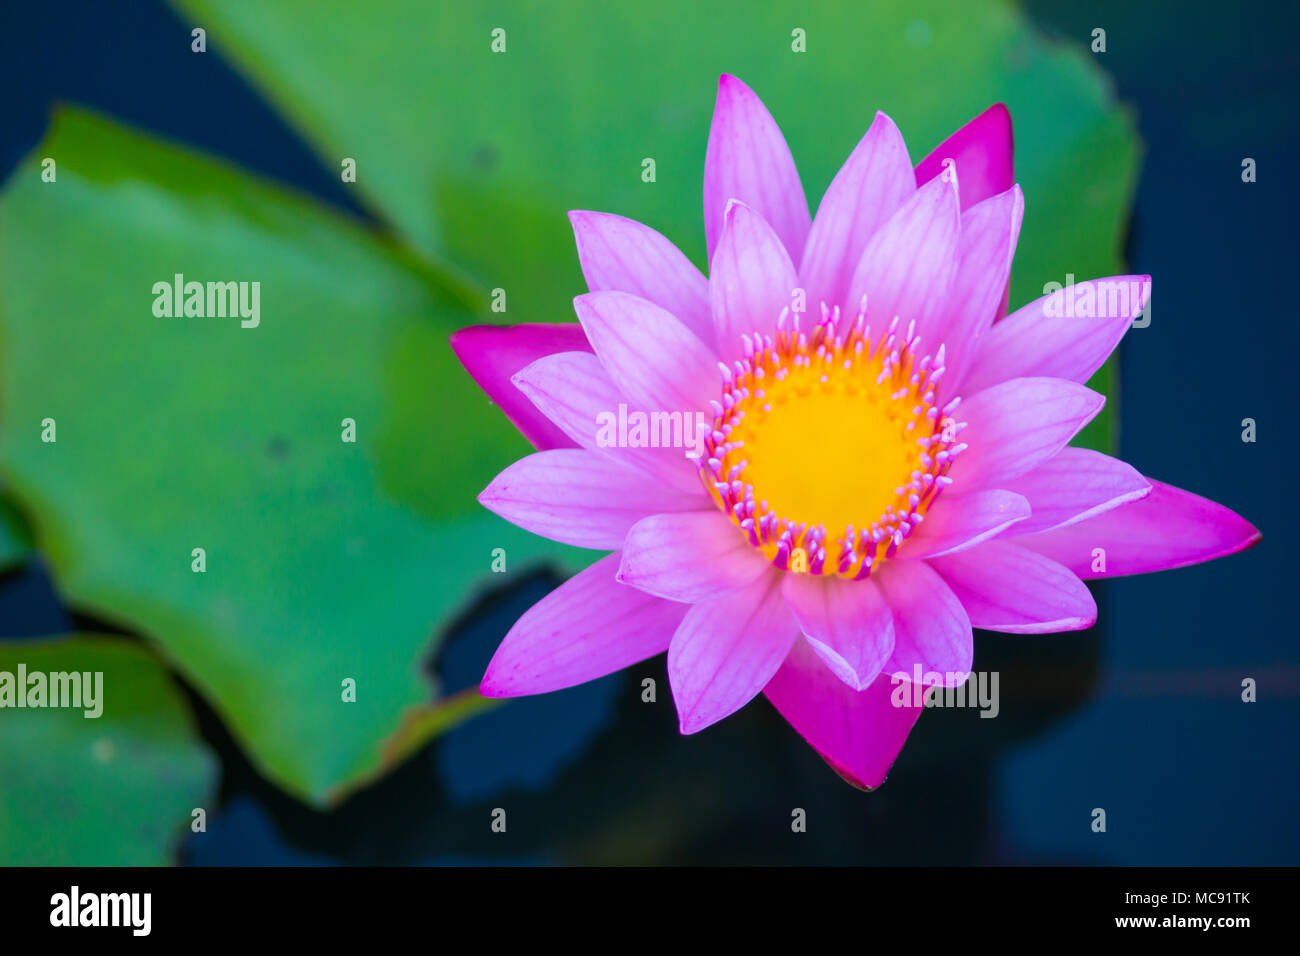 A Very Beautiful Blossom Lotus Flower Or Water Lily In Pond Focus